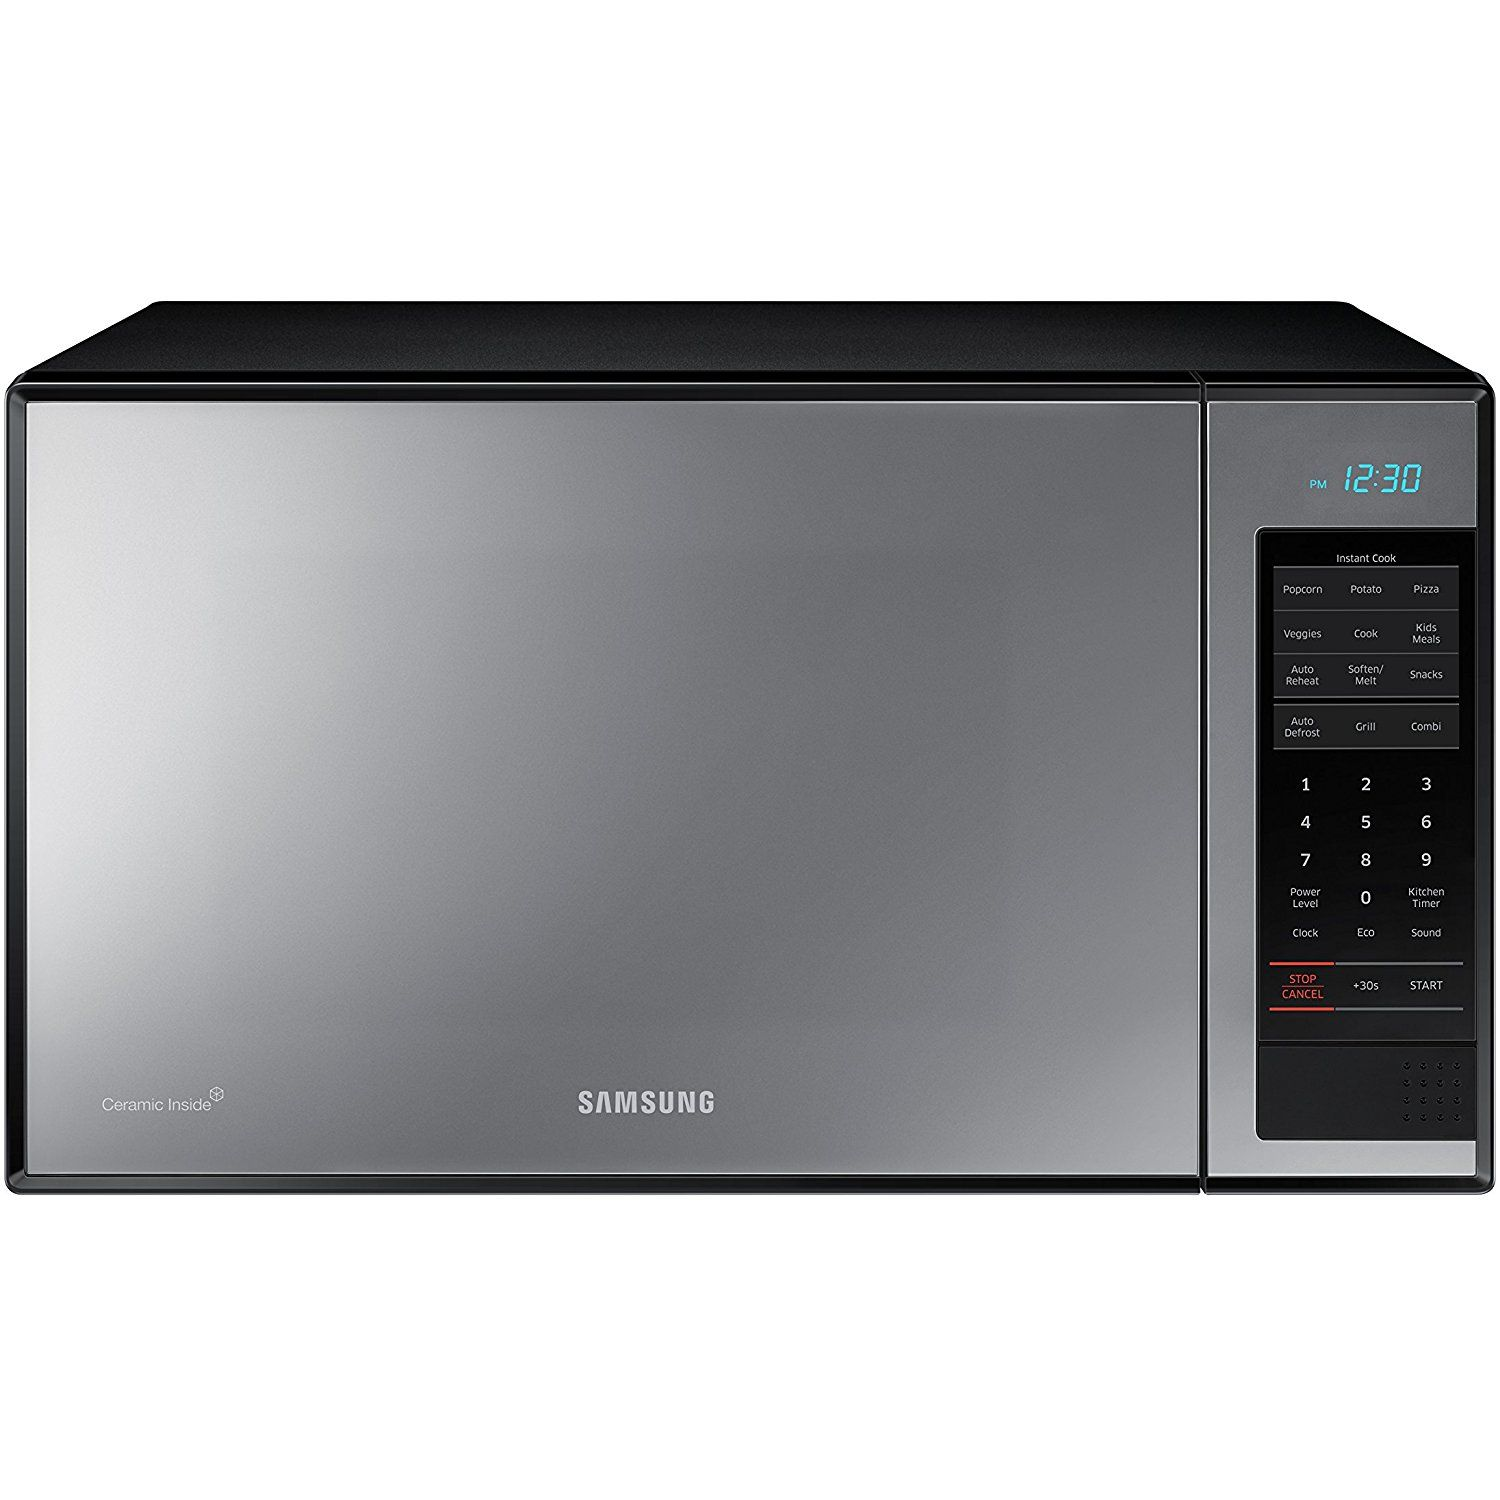 Samsung Mg14h3020cm 1 4 Cu Ft Countertop Grill Microwave Oven